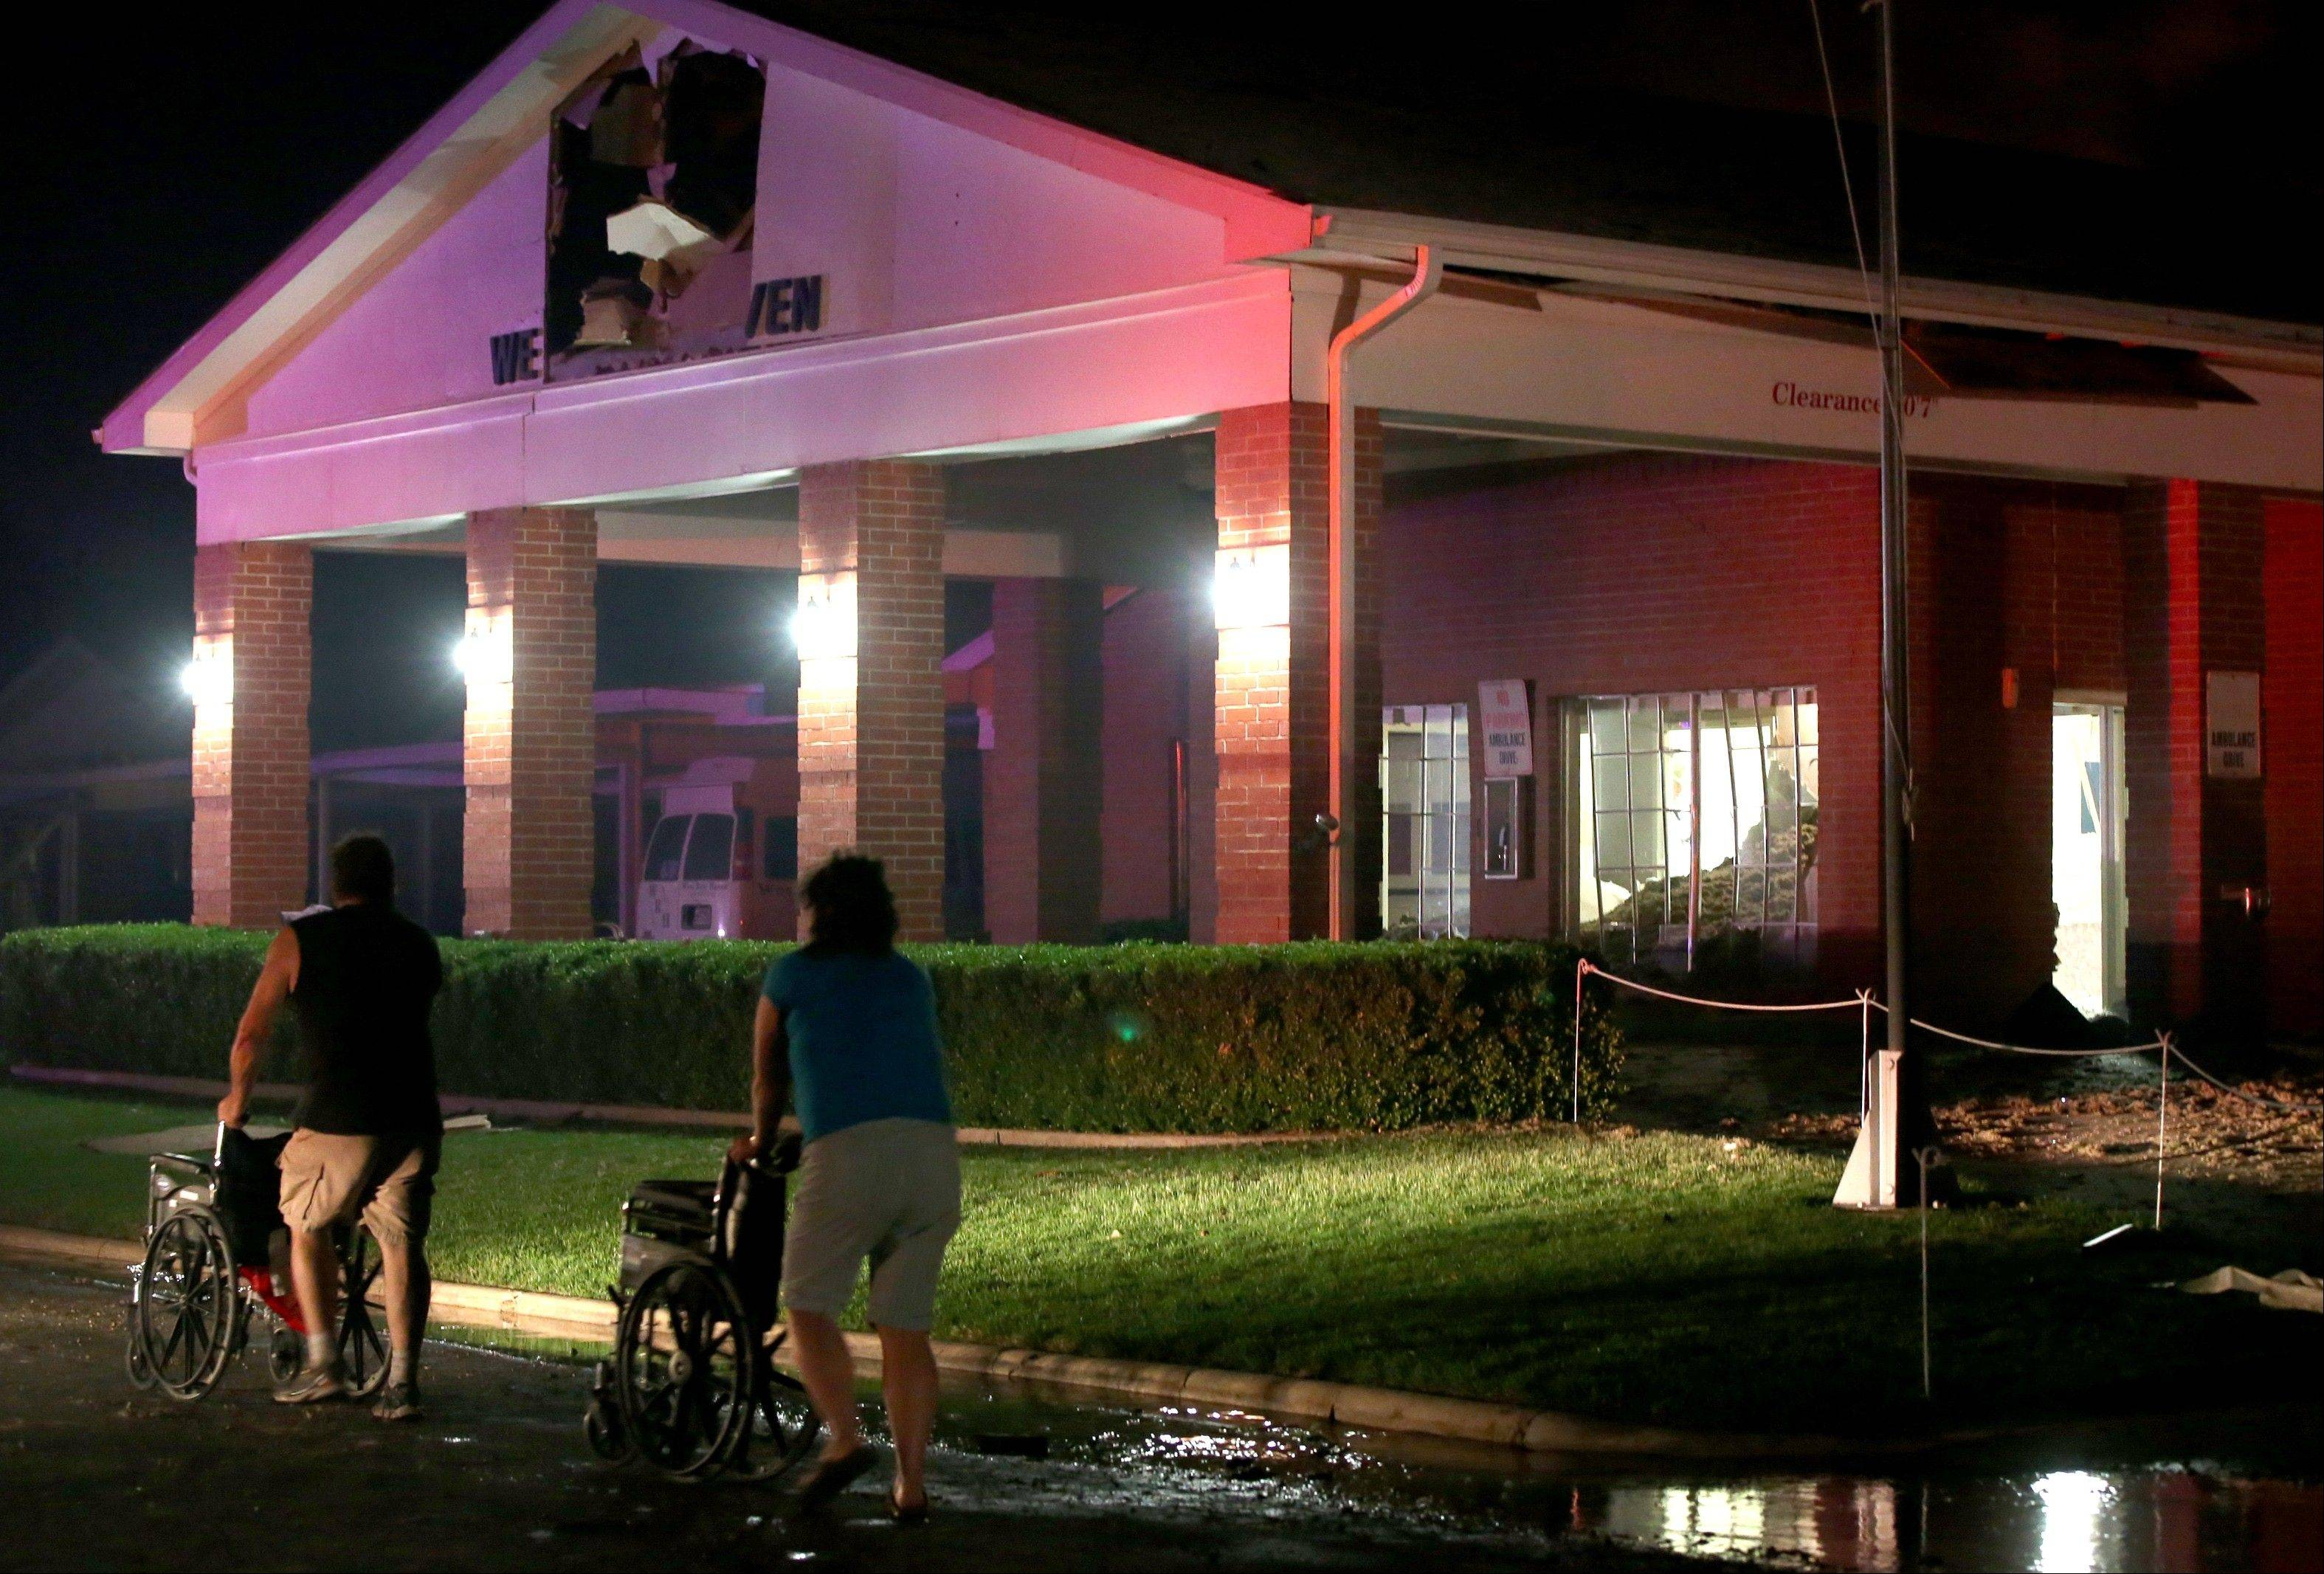 People are seen pushing wheelchairs in front of a damaged nursing home after an explosion at a nearby fertilizer plant.